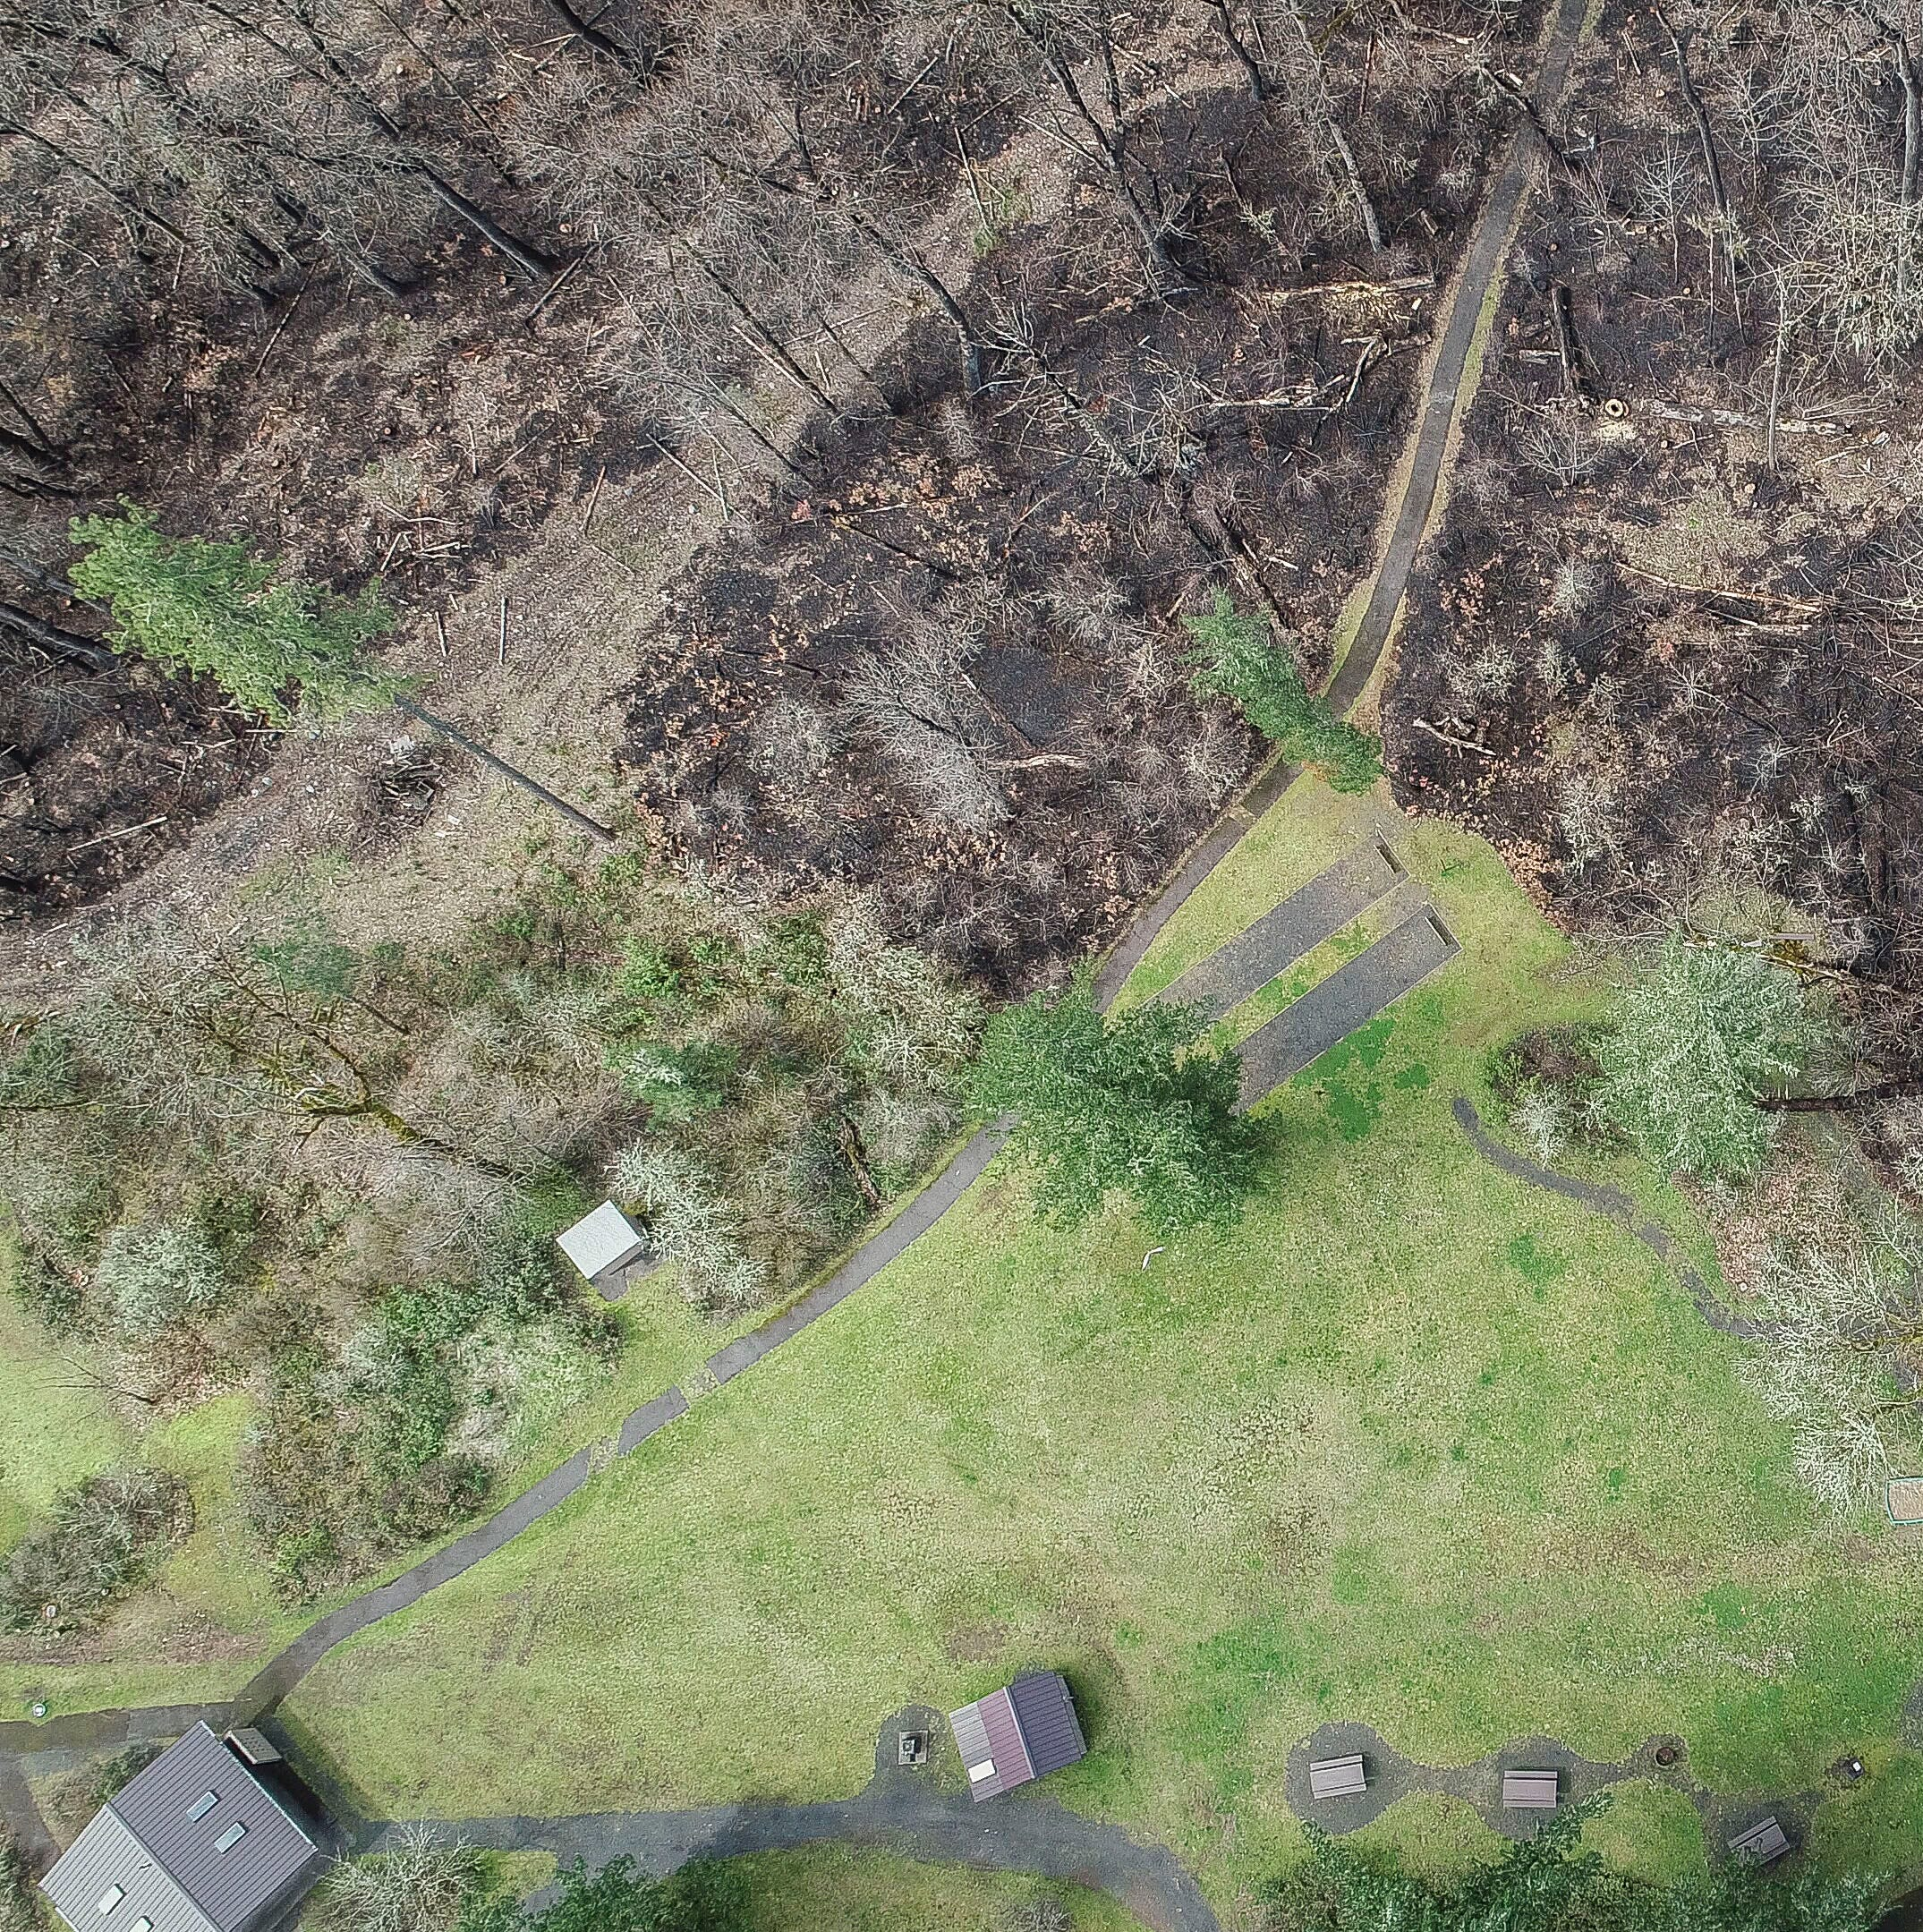 March wildfire that evacuated homes in Lyons and burned state park cost $332,000